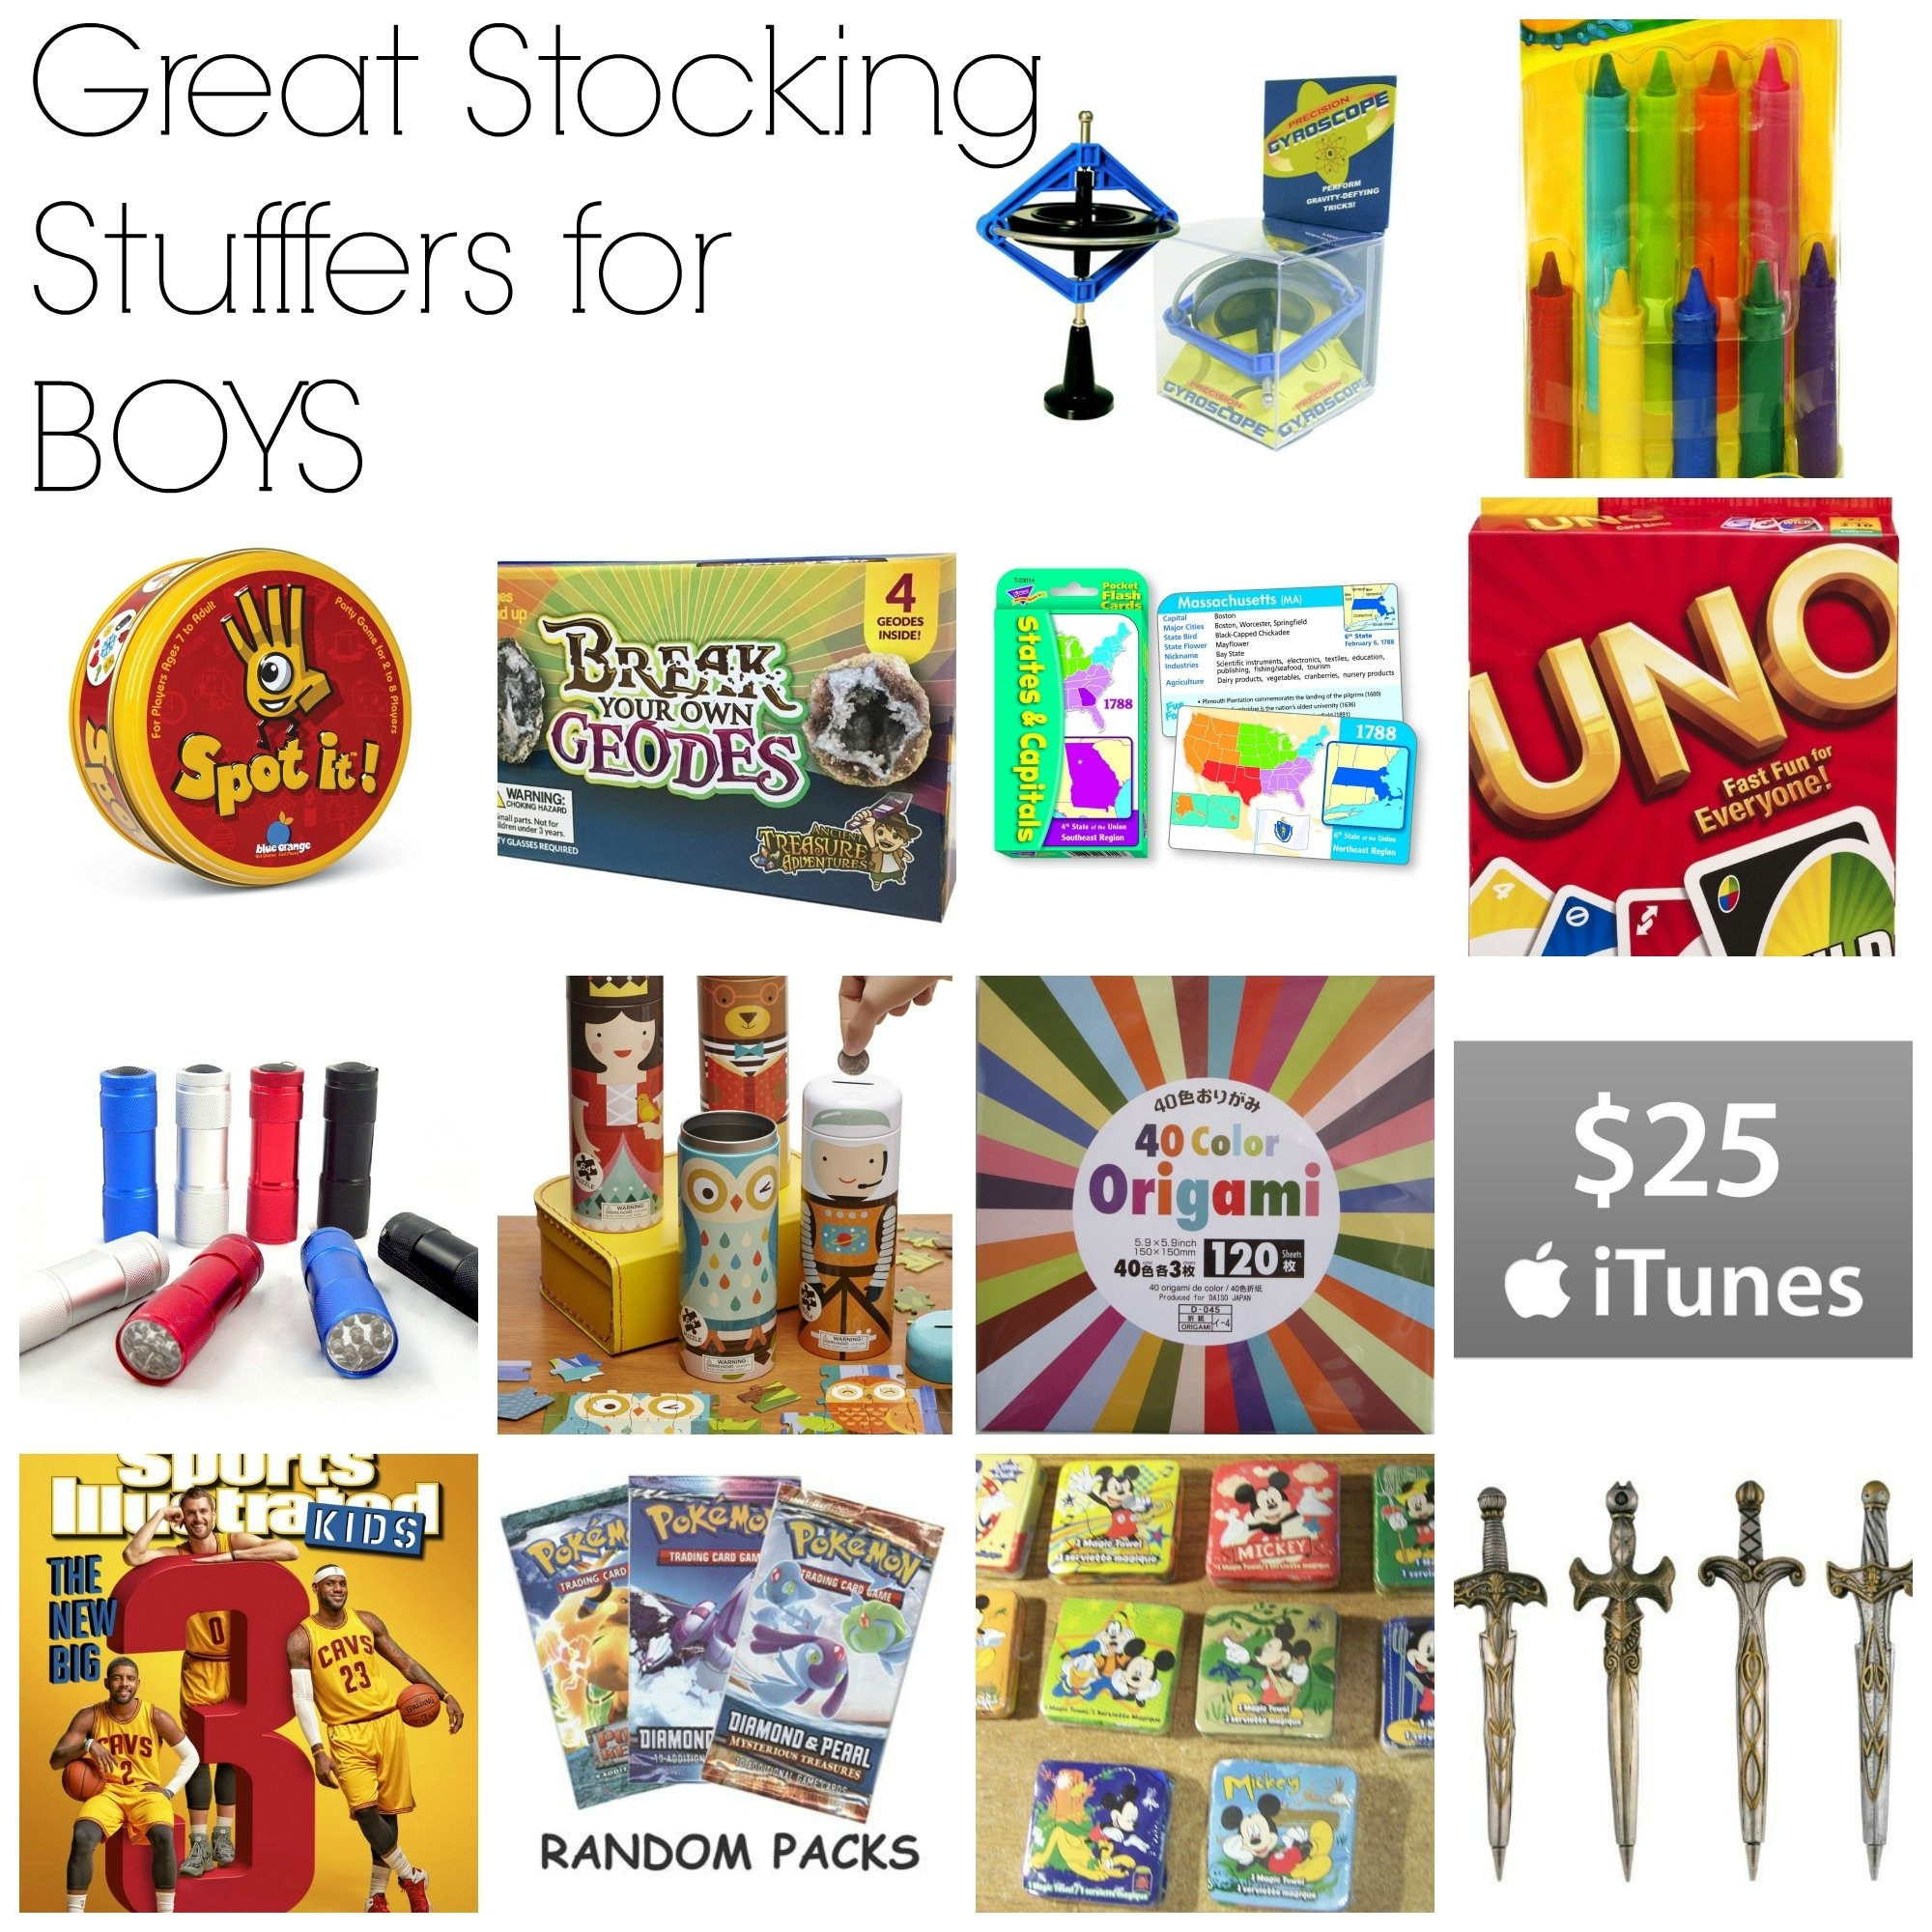 10 Unique Stocking Stuffers Ideas For Kids great stocking stuffers for boys brooke romney writes 2 2021